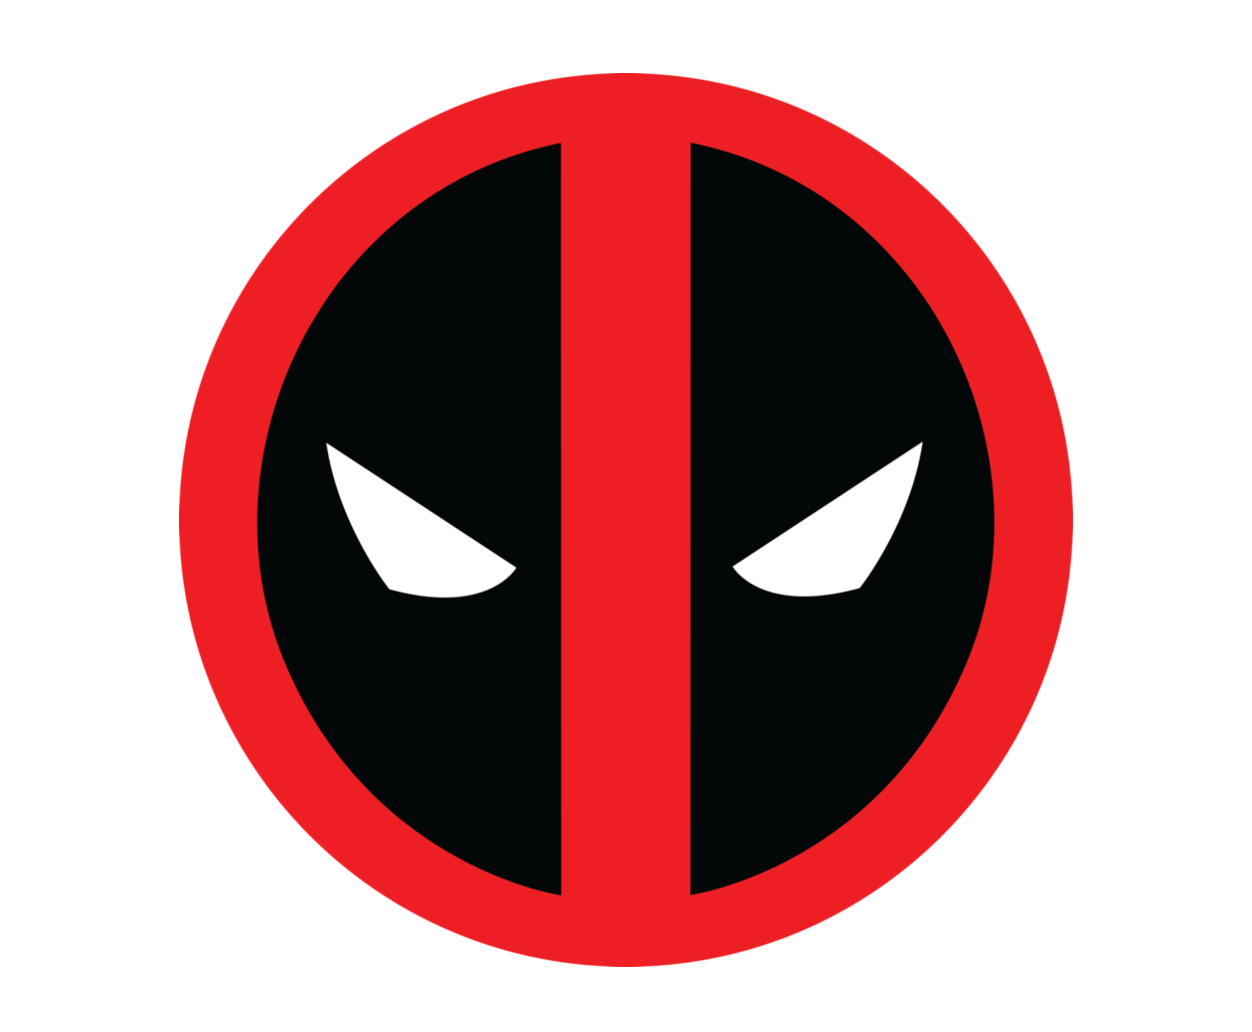 Deadpool logo png. Symbol meaning history and